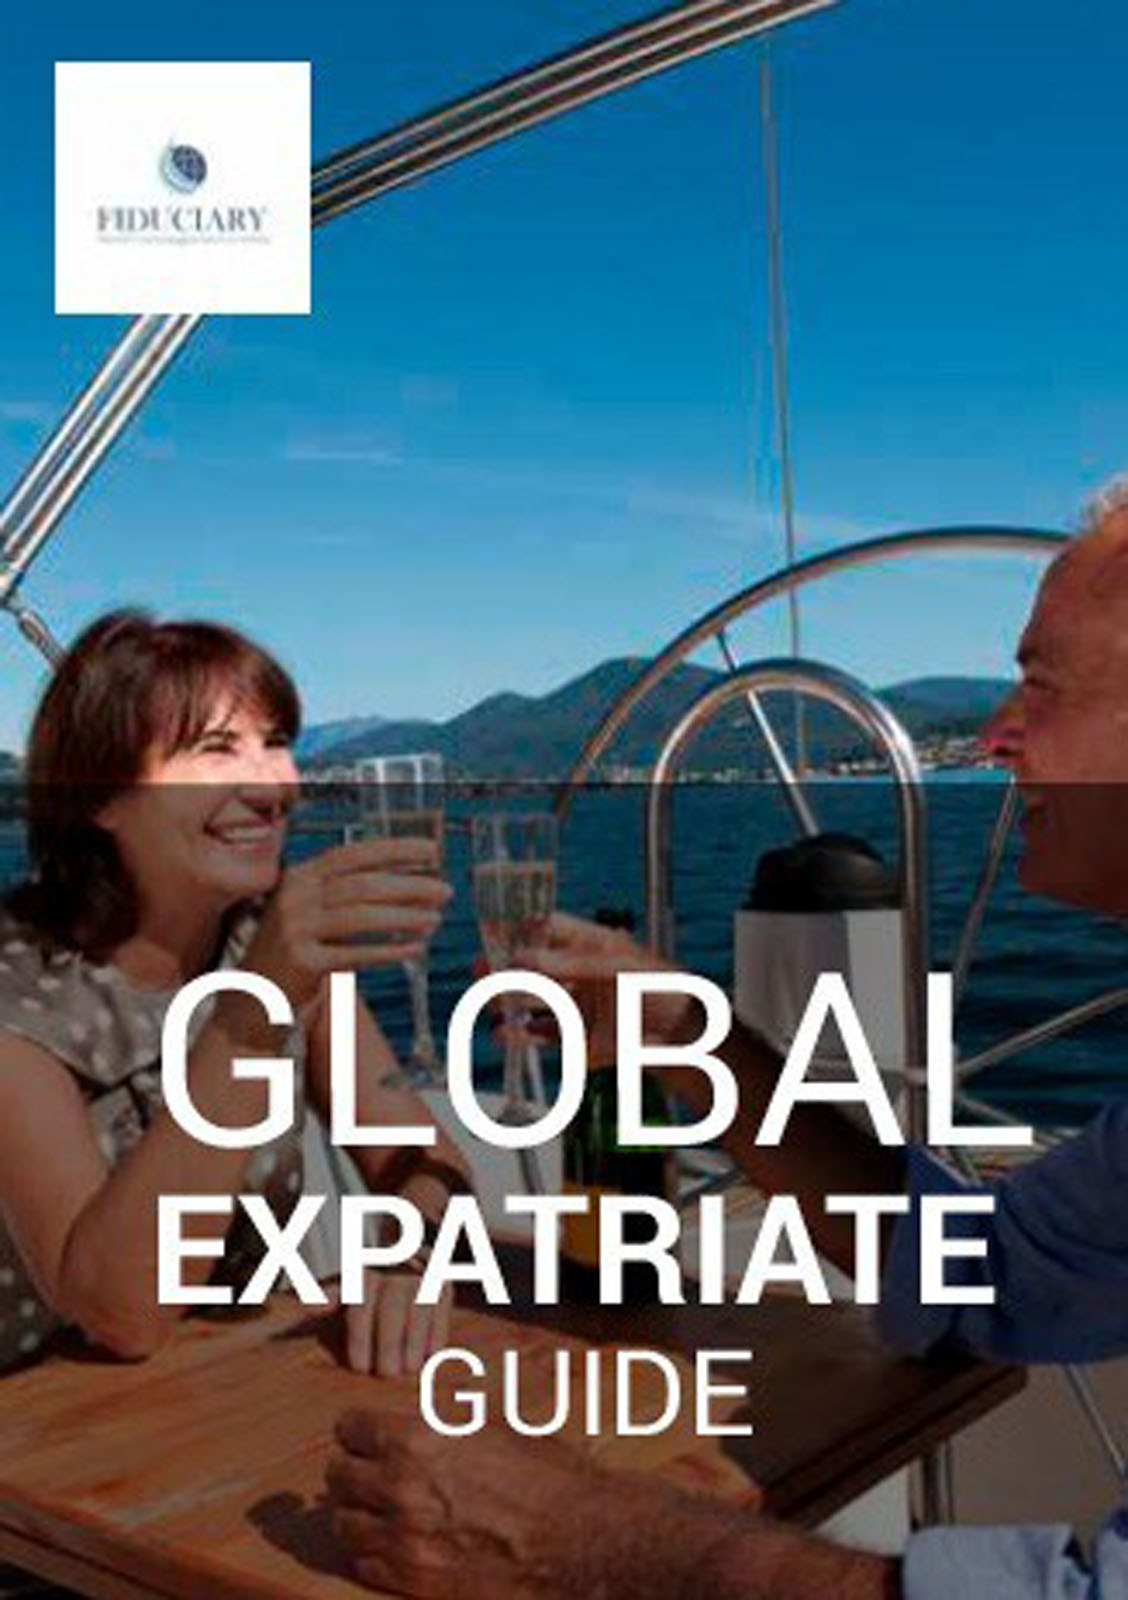 Global Expatriate Guide Image